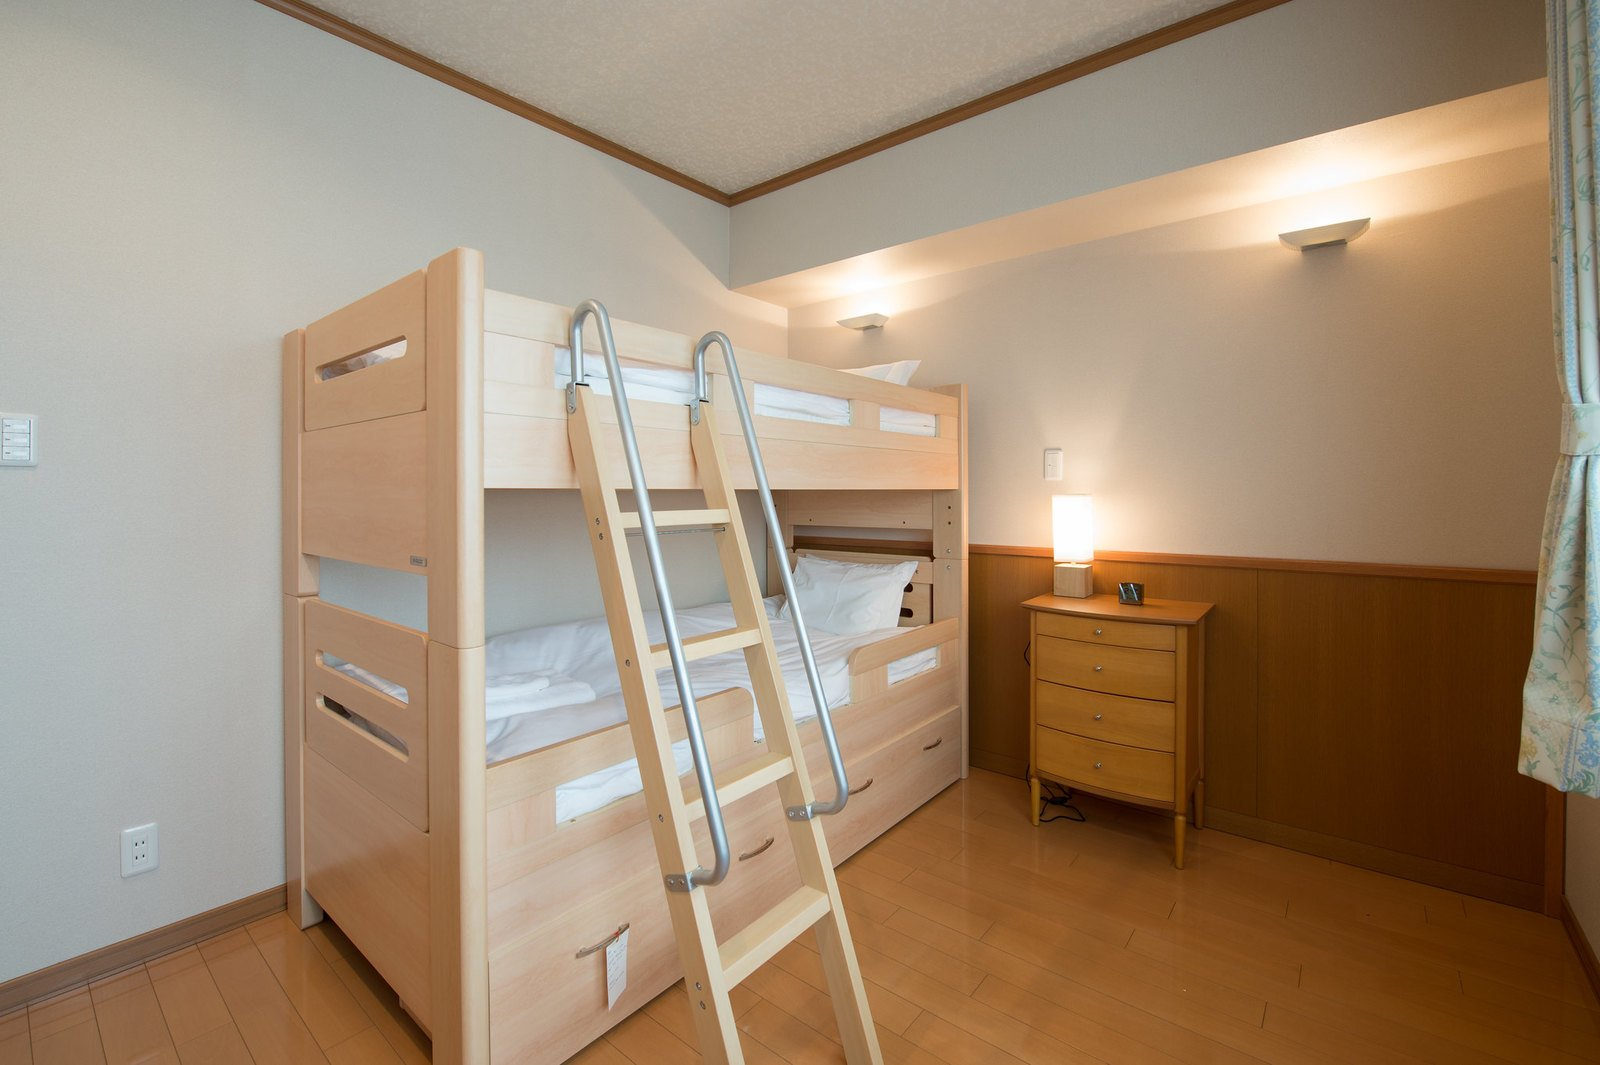 A 2 bedroom Premium apartment with family room at Mountainside Palace in Niseko.